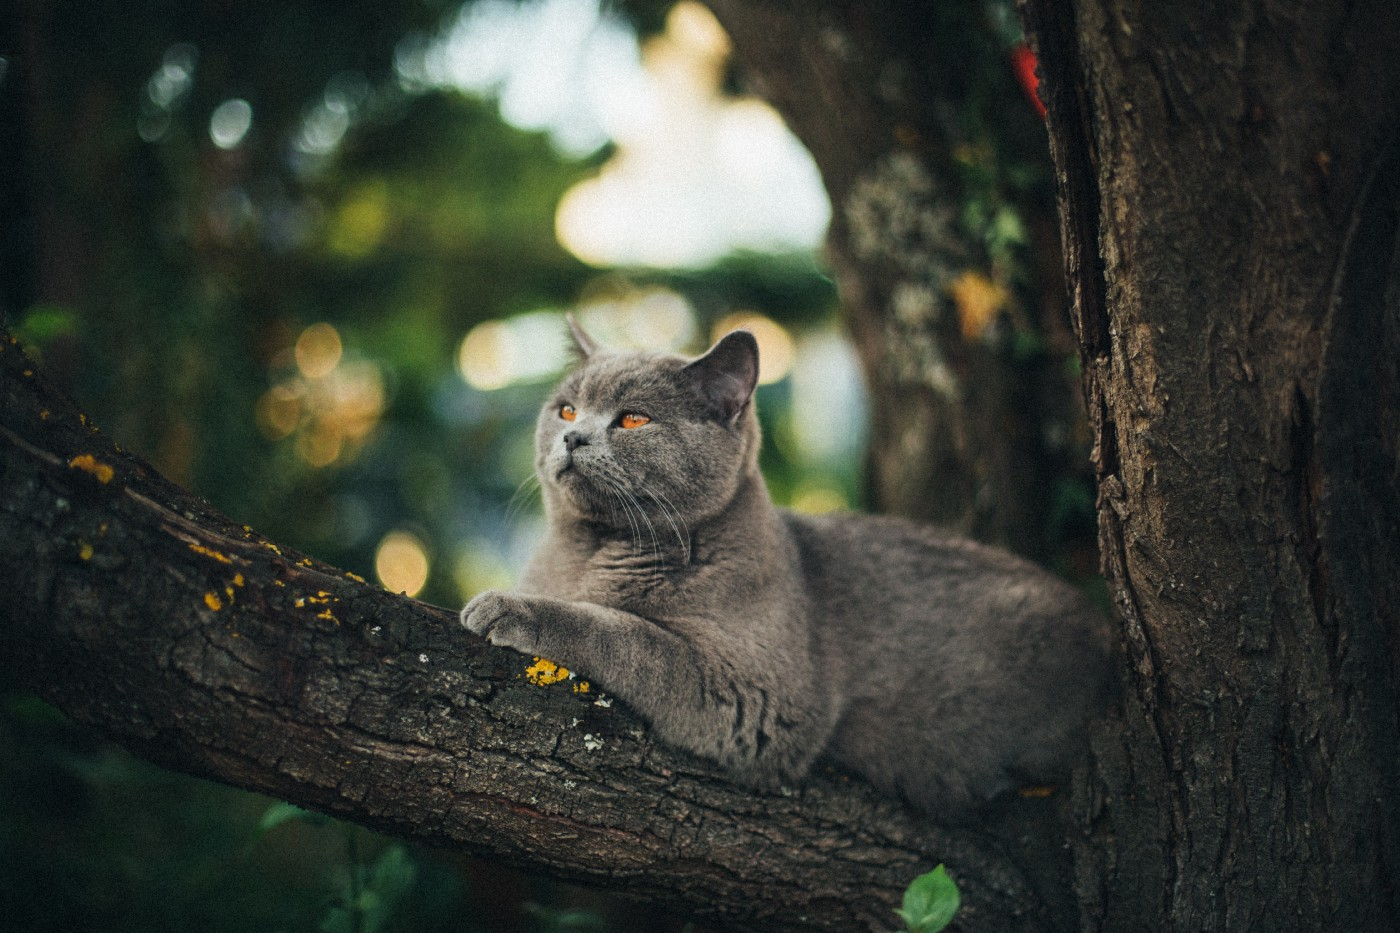 Gray cat sitting in a tree